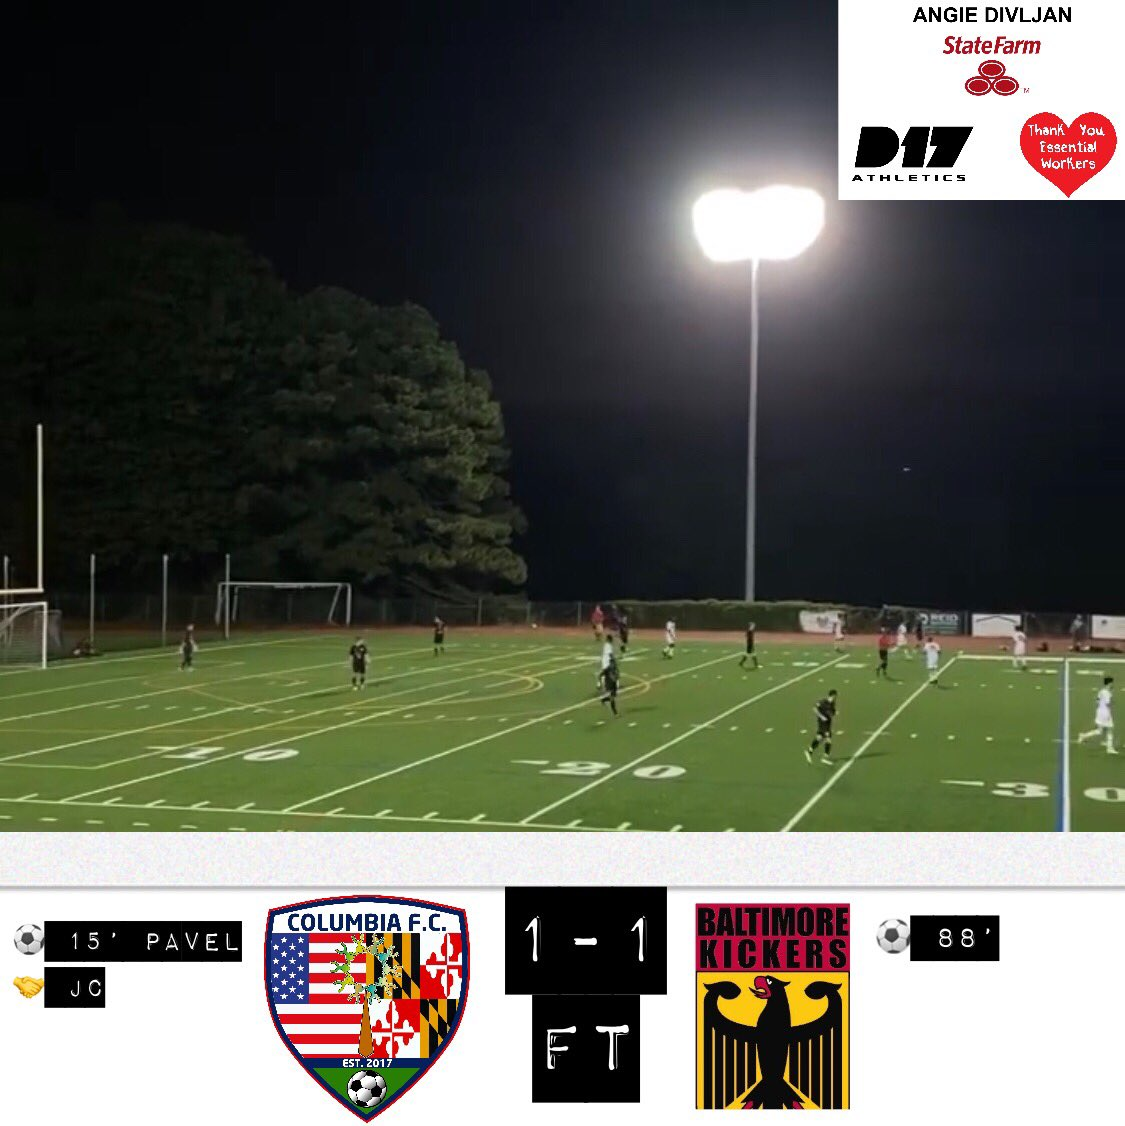 ⚽️🦾 Not the result we wanted, great game vs @BmoreKickers now we get back to work and get ready for the next game. LET'S GO TEAM!!! All for one, One #ForAll #team #soccer #saynotoracism @D17Athletics @ColumbiaMDTweet @marylandsoccer @MarylandMajors https://t.co/M7Ois2XUpb